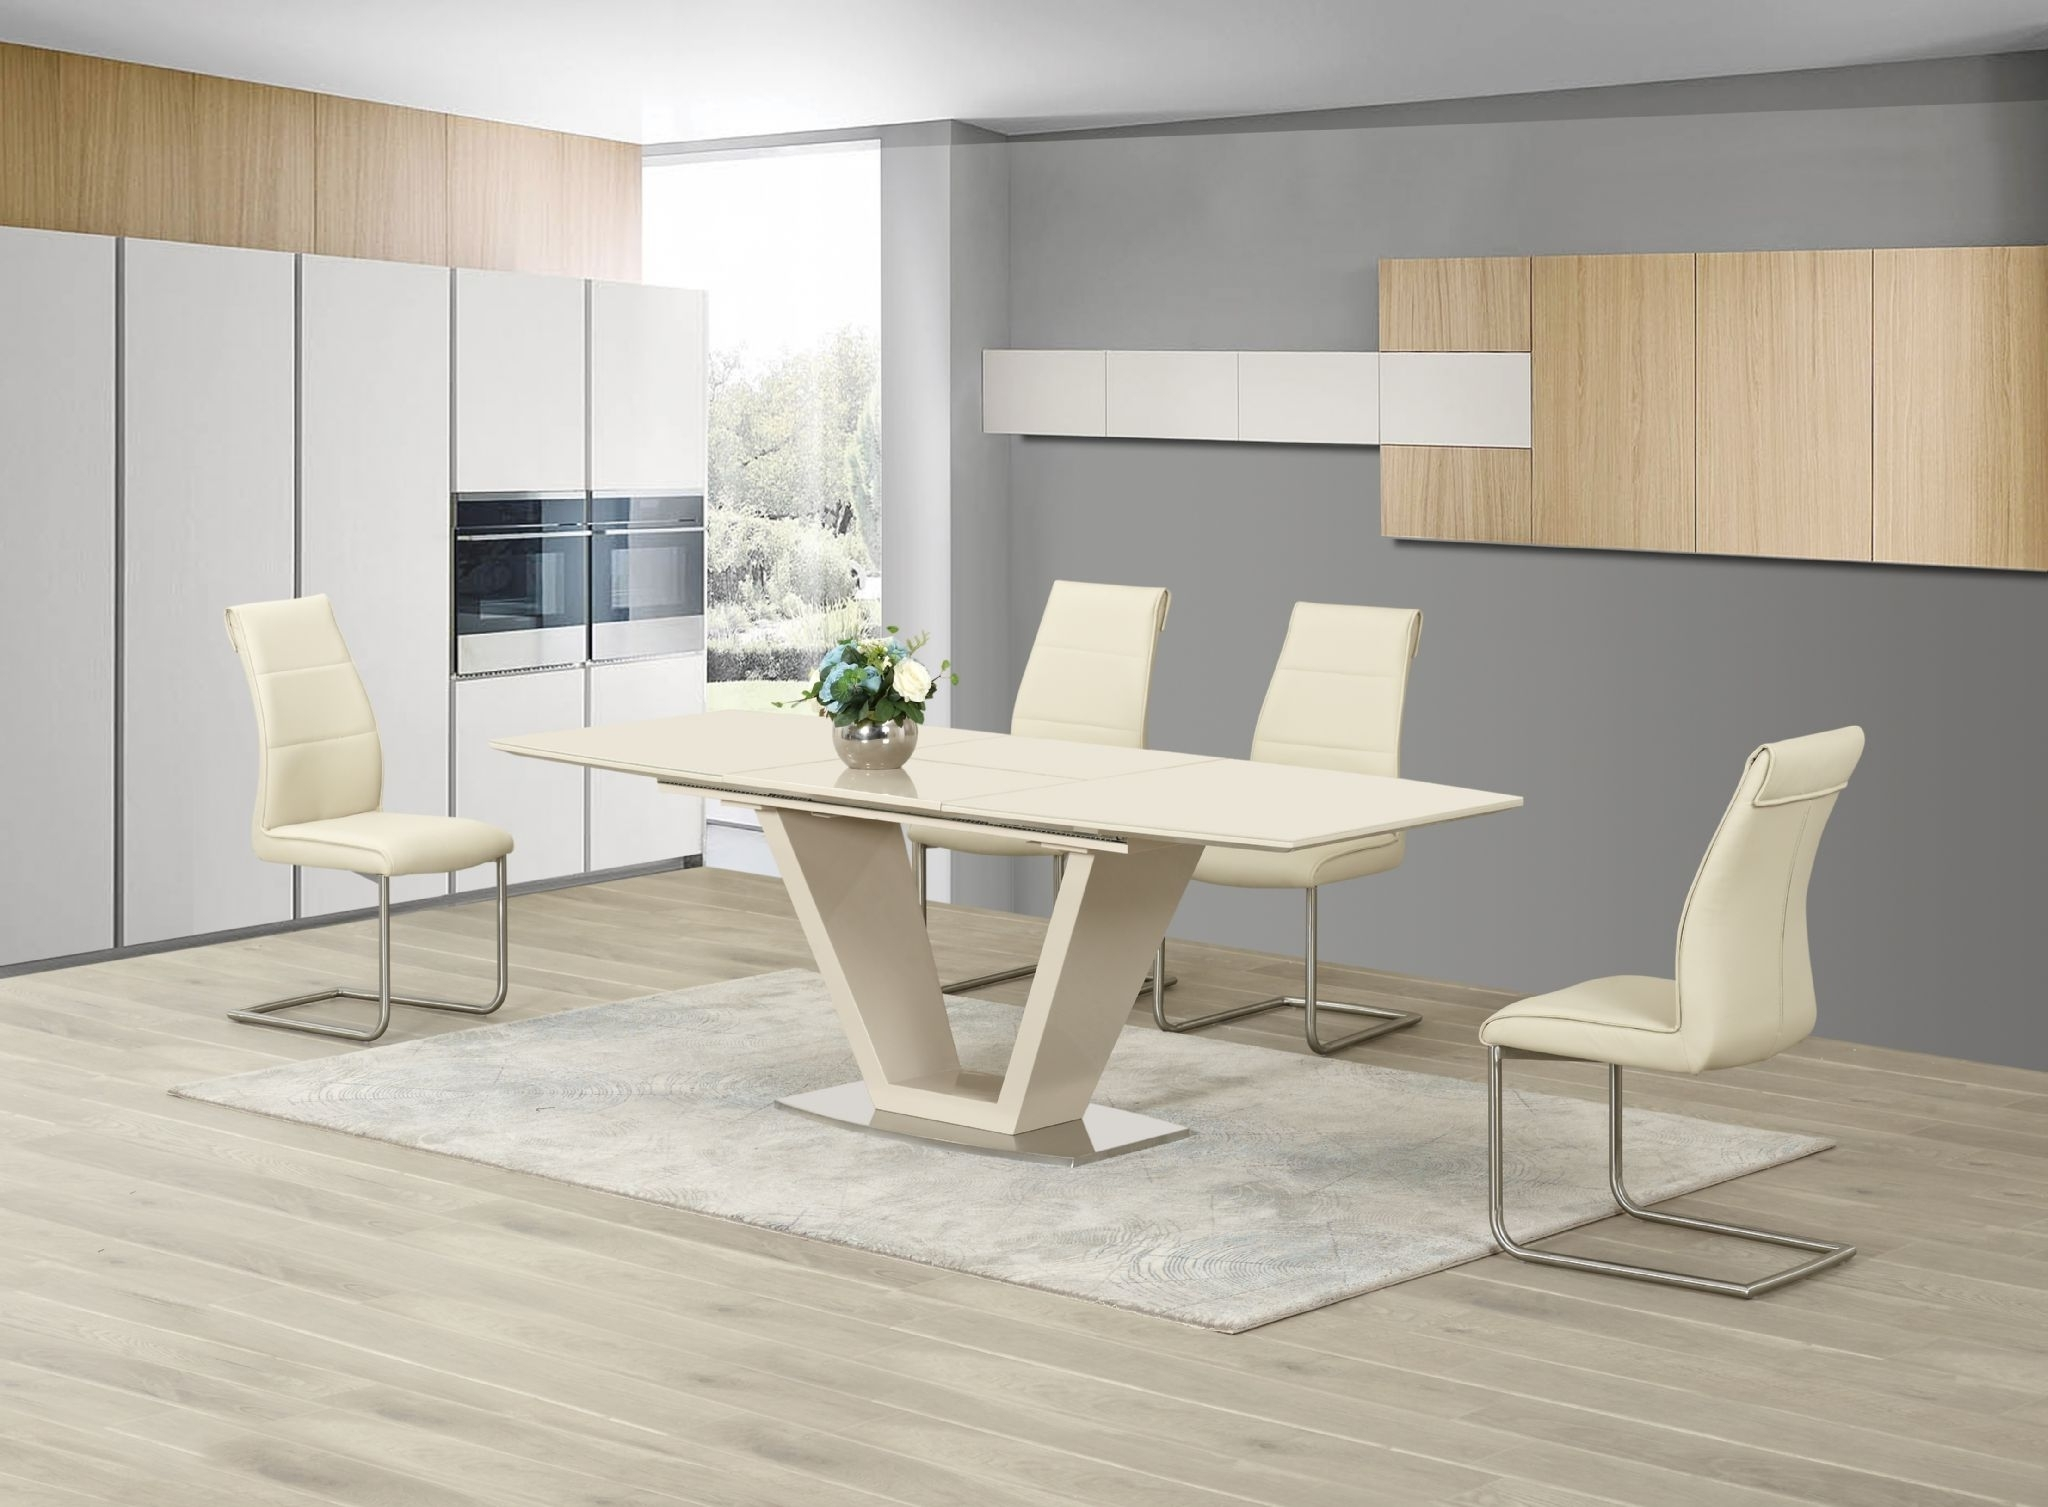 Extendable Dining Tables And Chairs throughout Best and Newest Ga Loriga Cream Gloss Glass Designer Dining Table Extending 160 220